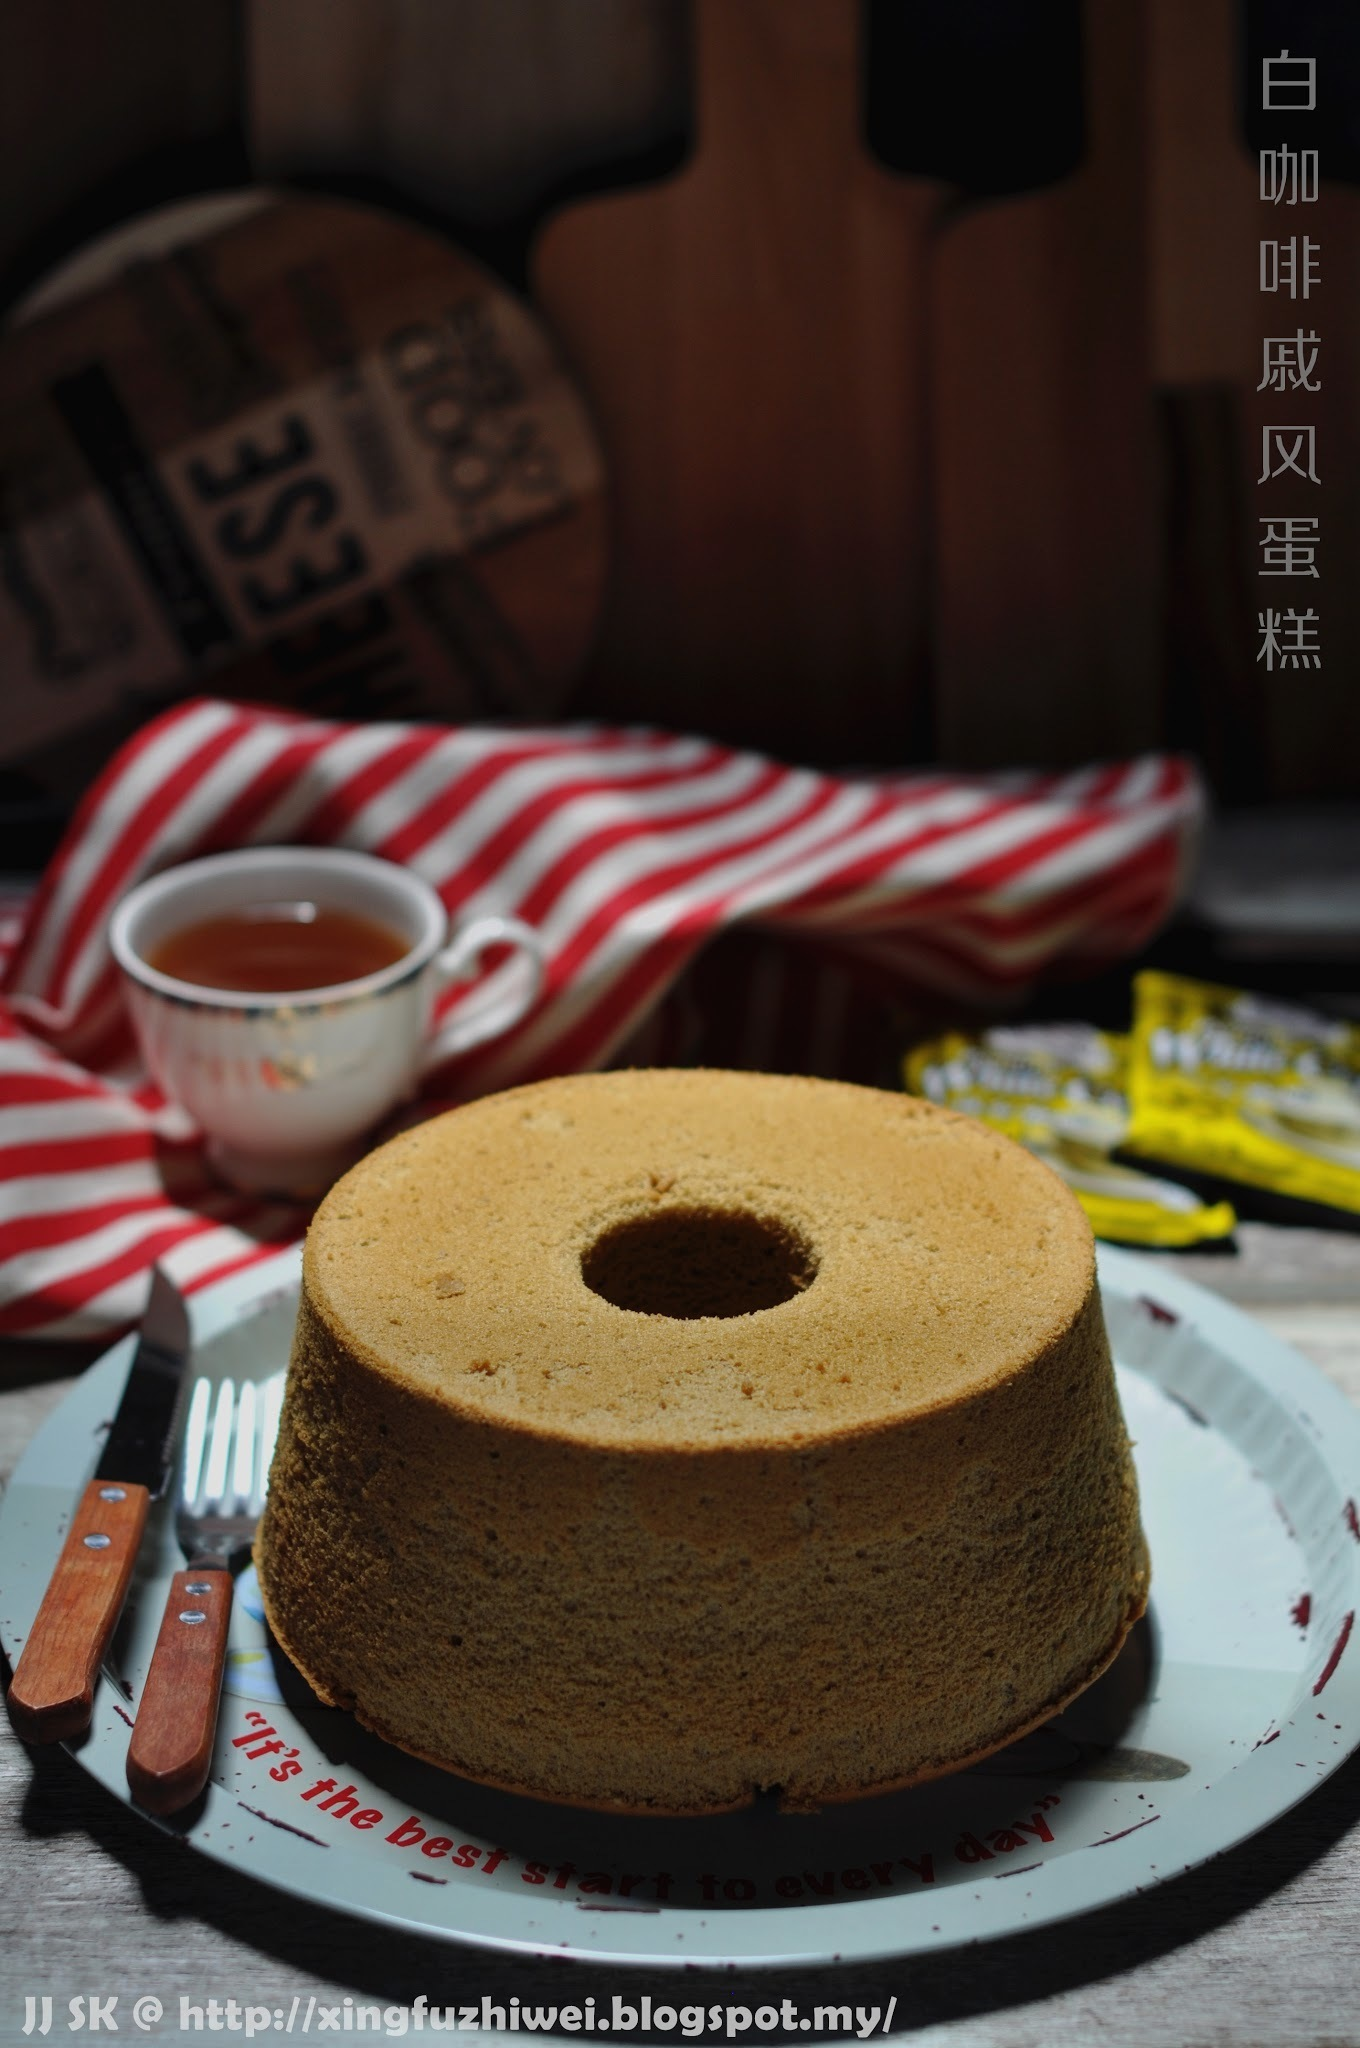 白咖啡戚风蛋糕 White Coffee Chiffon Cake